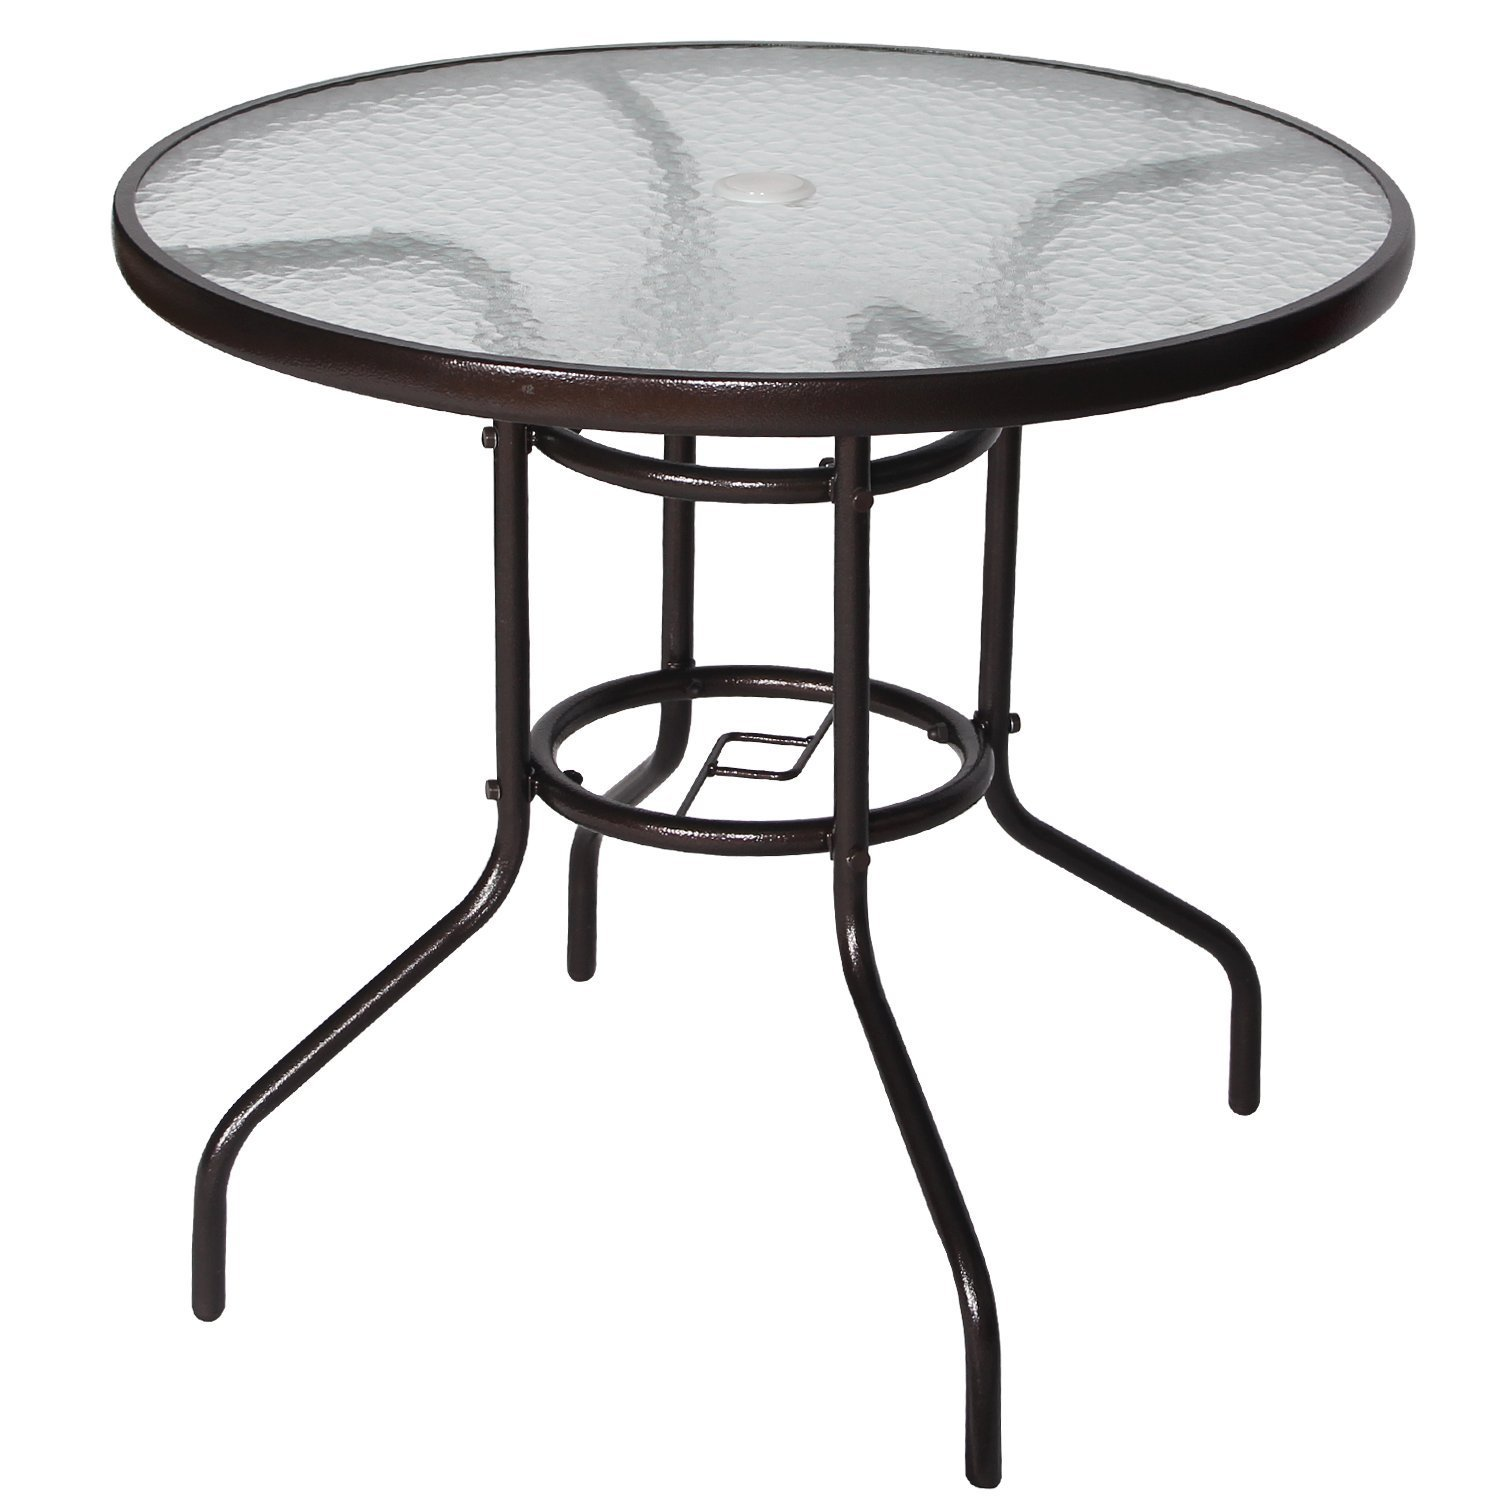 "Cloud Mountain 32"" Outdoor Dining Table Patio Tempered Glass Table Patio Bistro Table Top Umbrella Stand Round Table Deck Garden Home Furniture Table, Dark Chocolate"